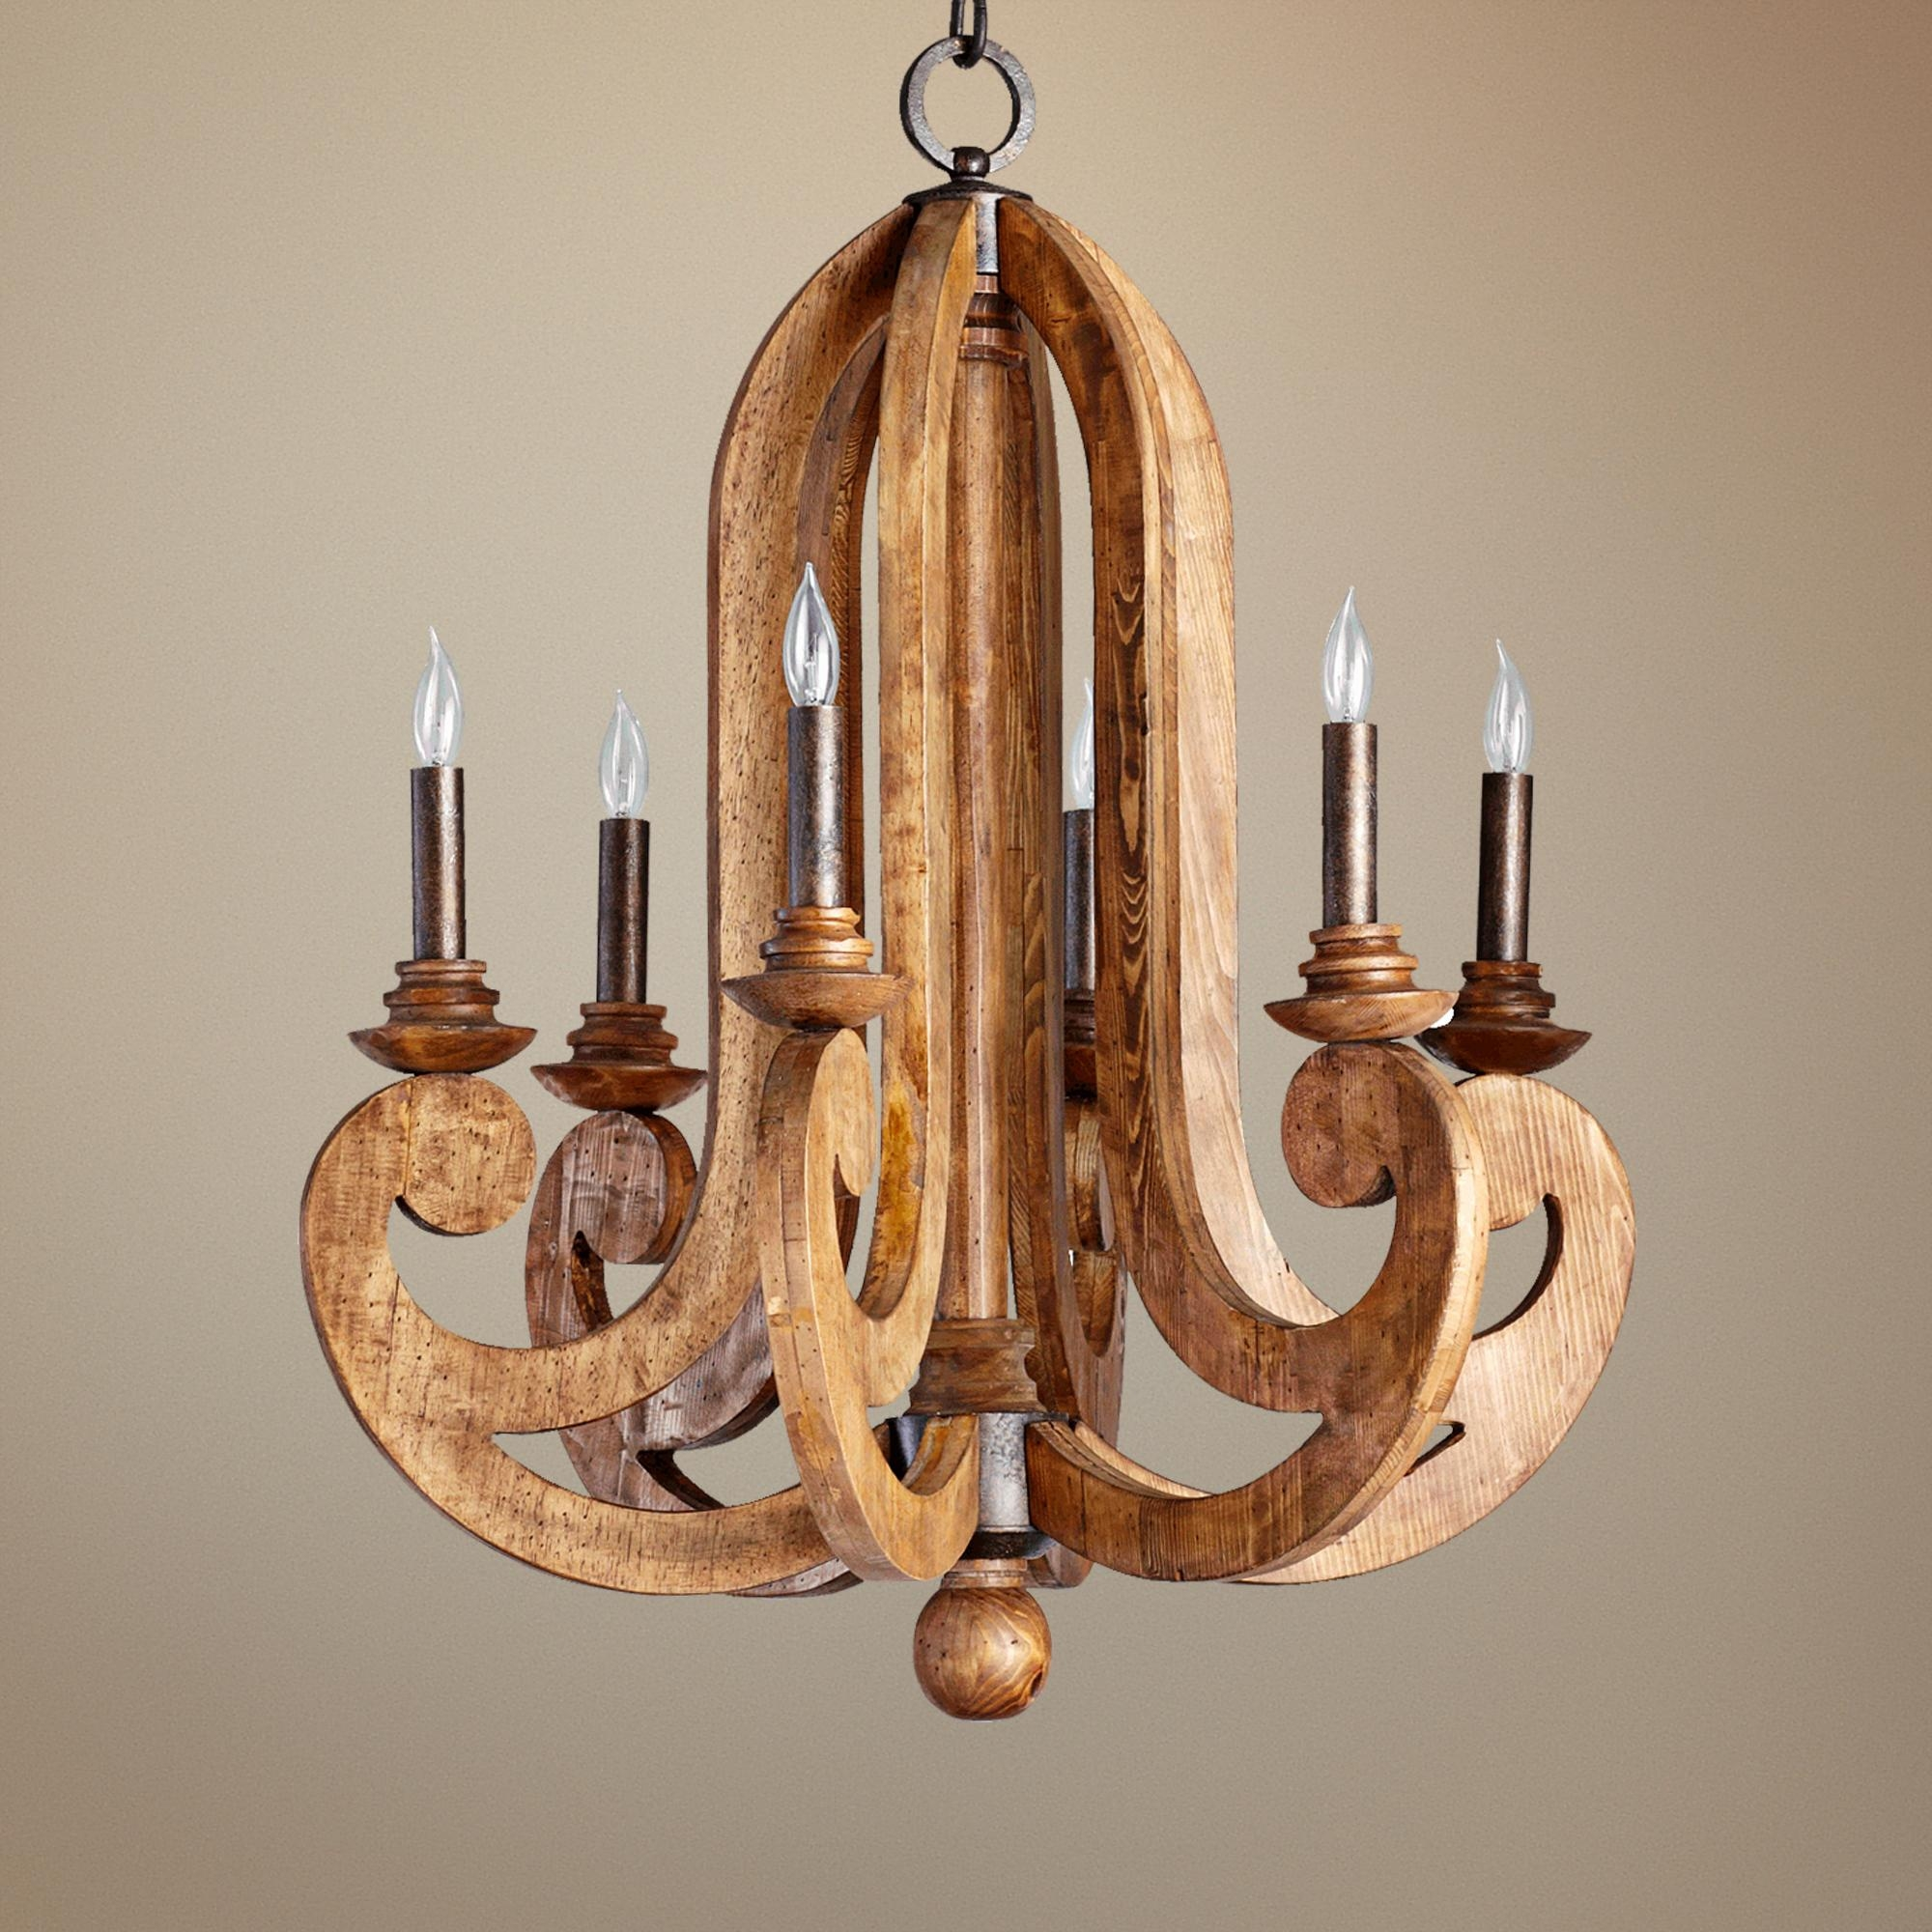 Large Round Wooden Orb Chandelier Chandeliers And Rounding In Wooden Chandeliers (#9 of 12)